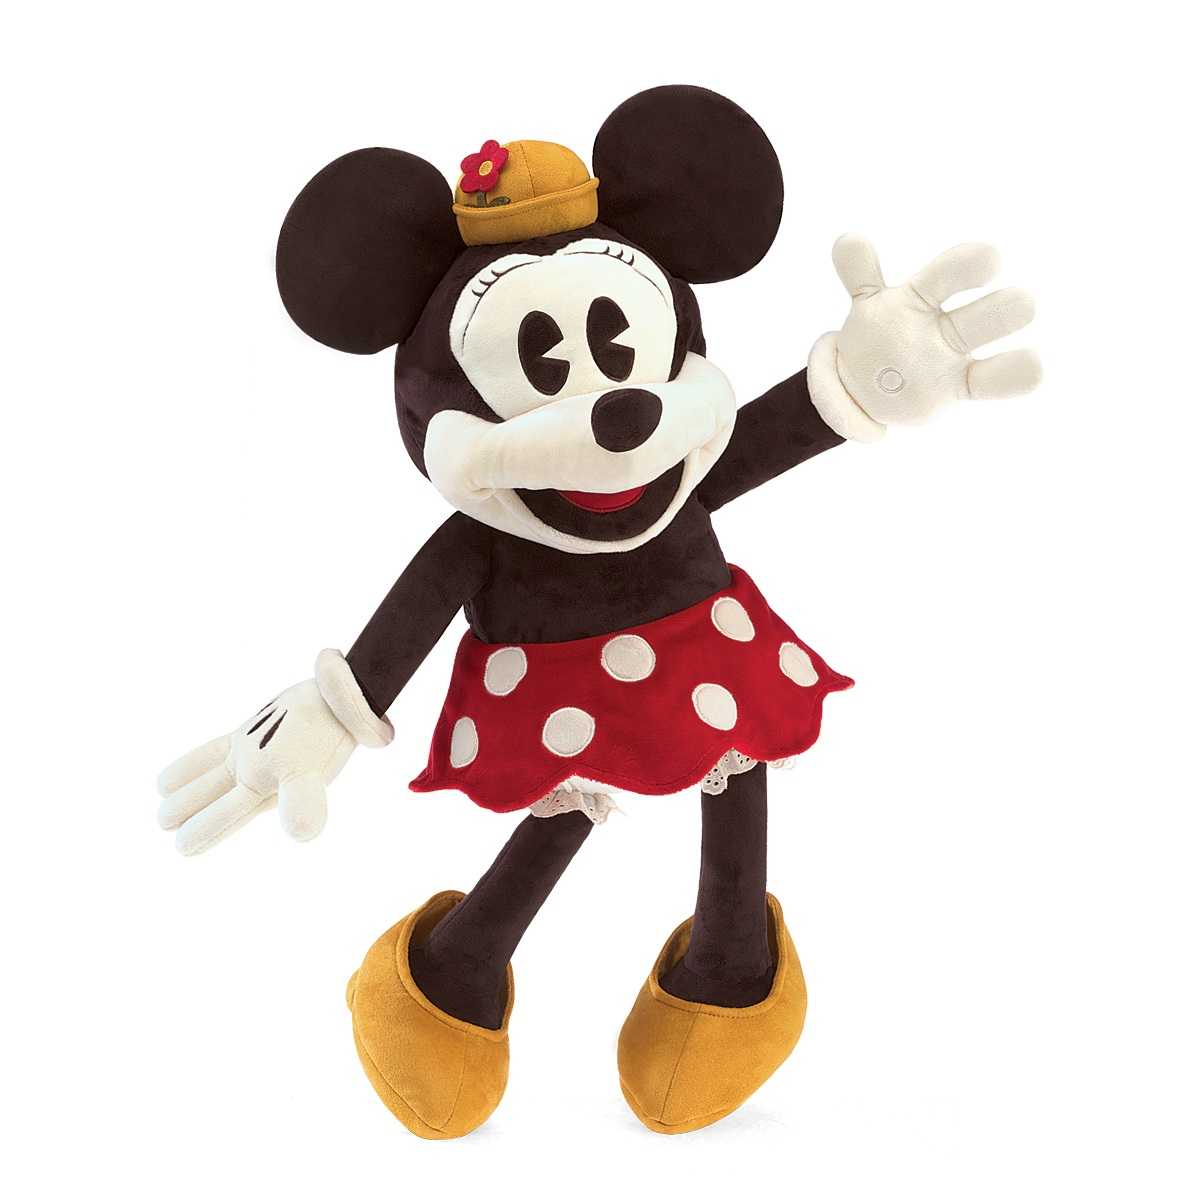 Disney Minnie Mouse Hand Puppet by Folkmanis